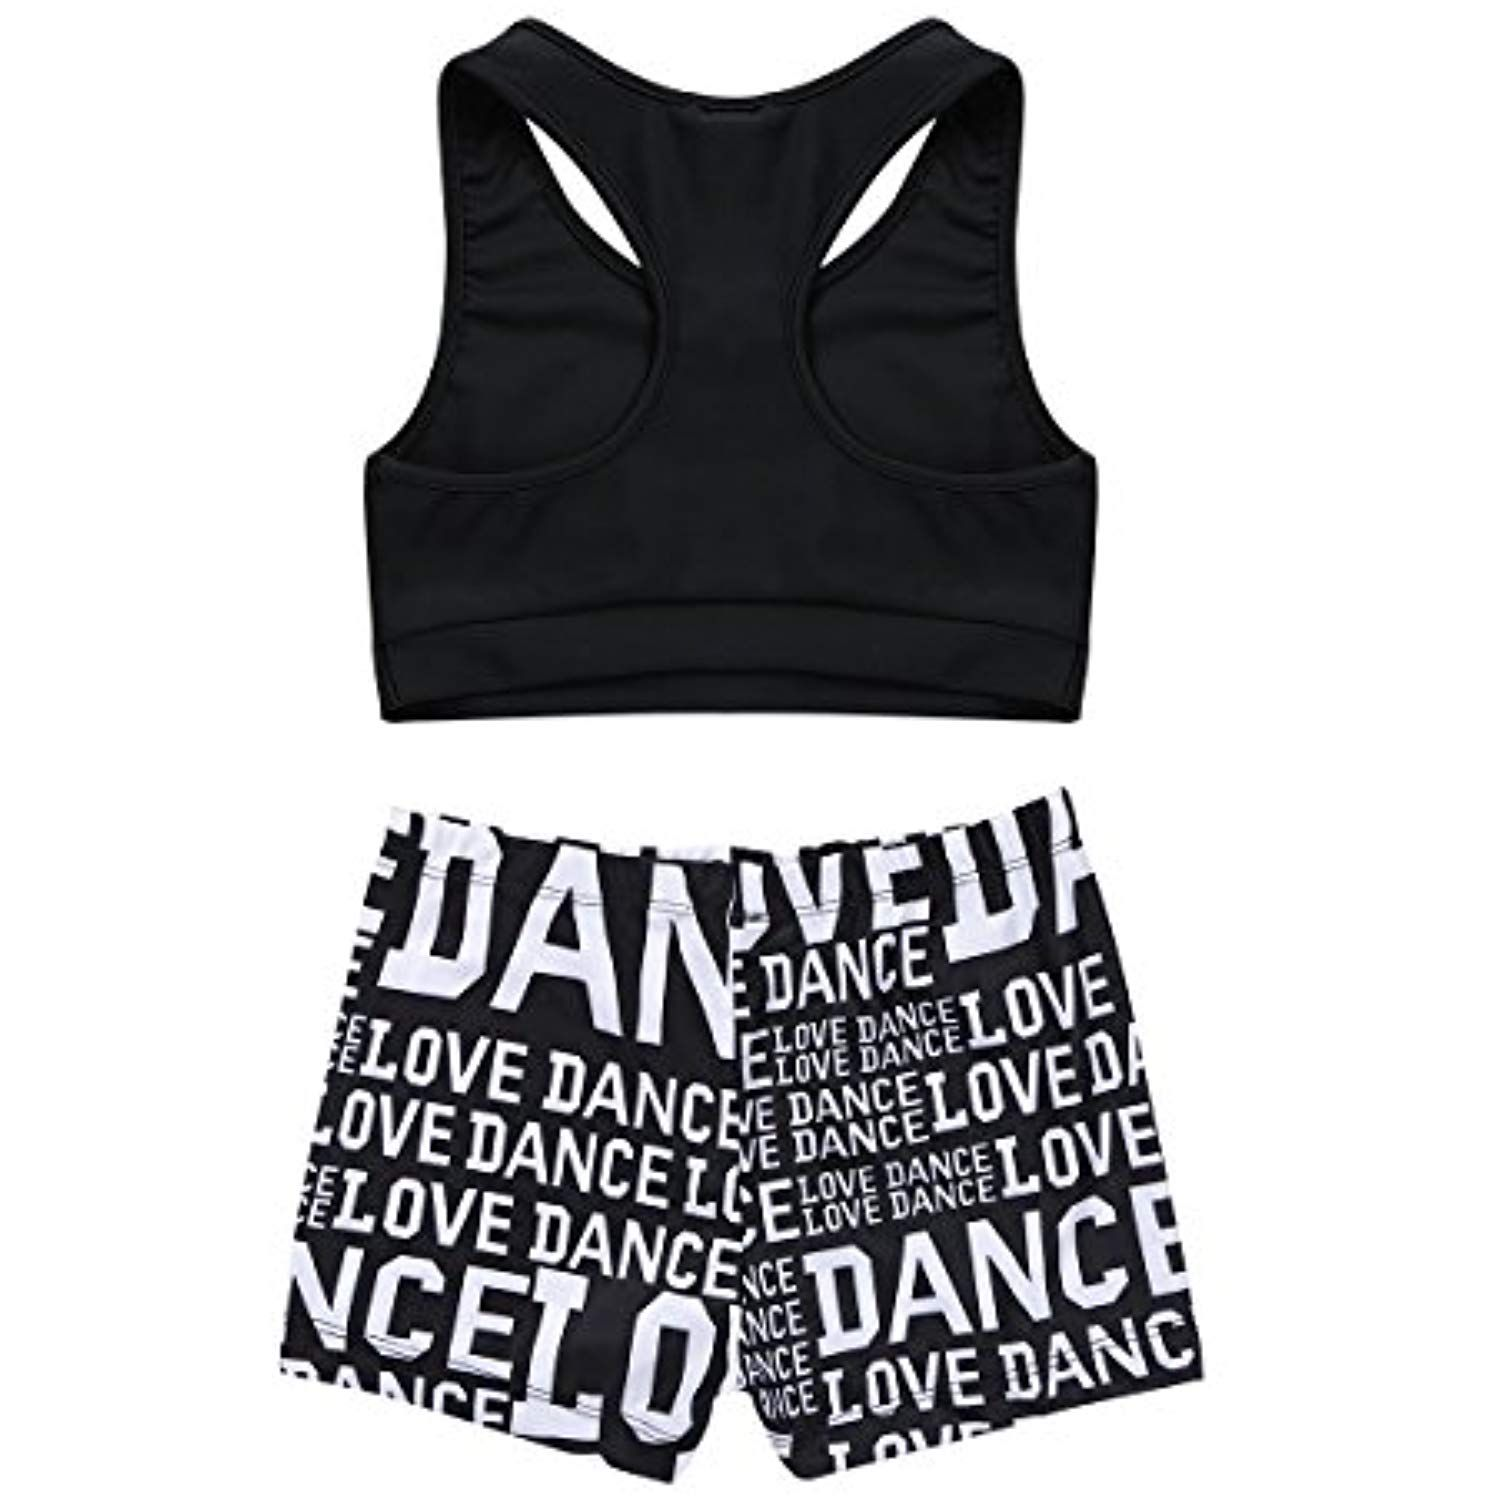 FEESHOW Kids Girls Active wear Sports Bra Crop Top with Leggings Gymnastics  Dance Outfit 2 Piece Set Active Top & Bottom Sets